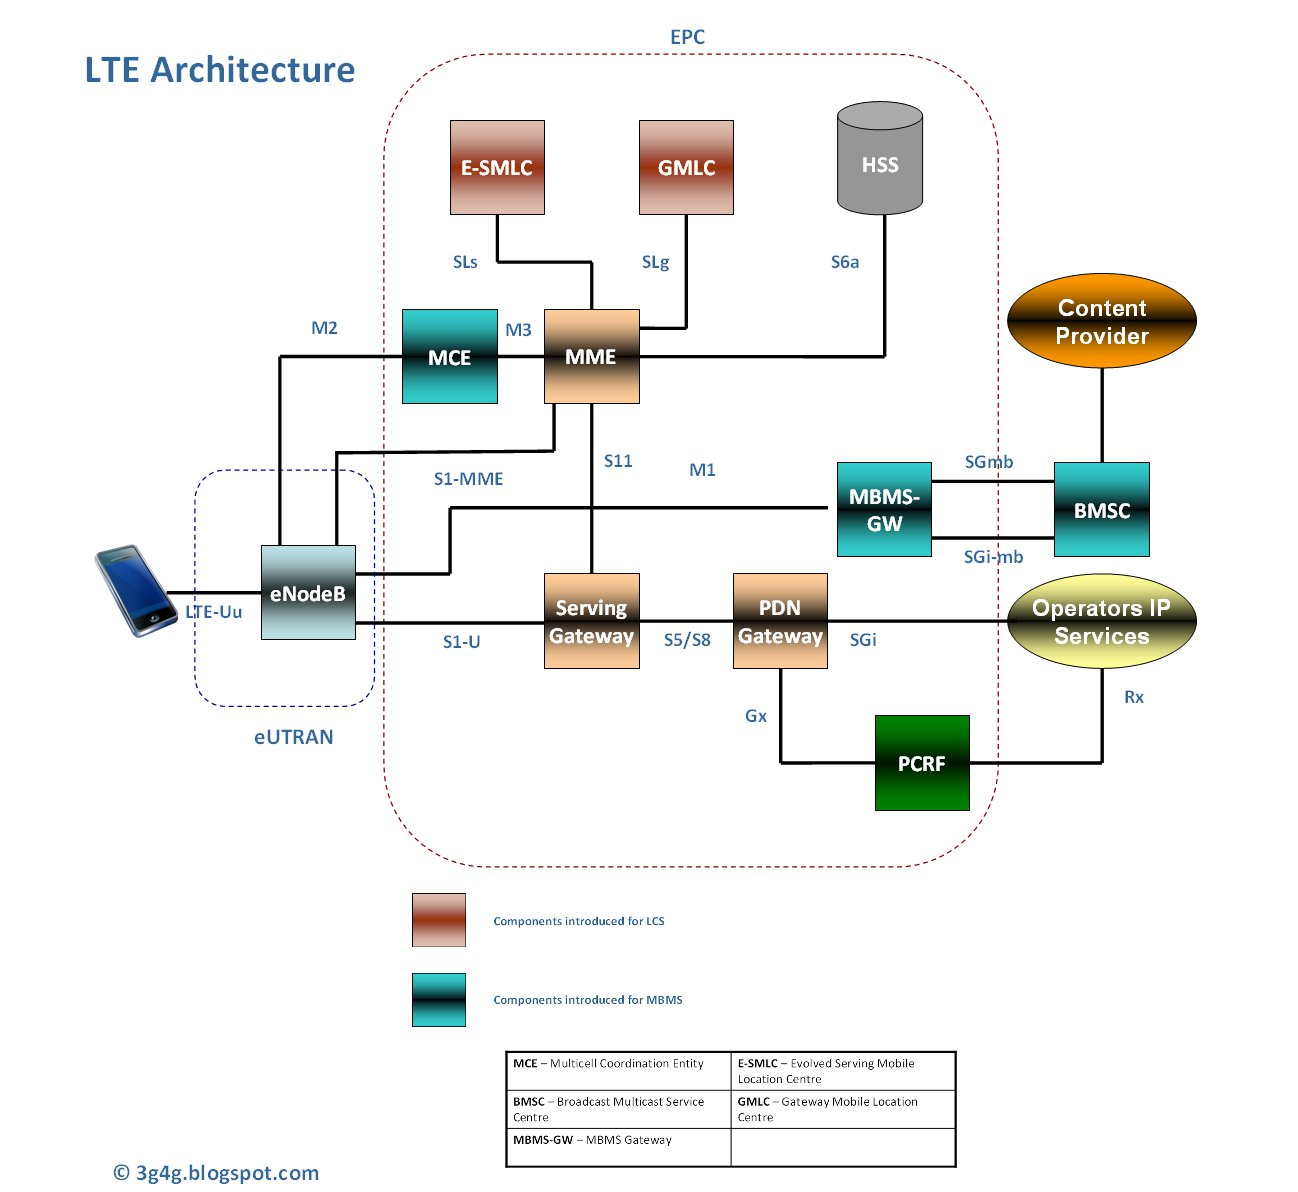 The 3g4g blog updated lte architecture with lcs and mbms entities updated lte architecture with lcs and mbms entities baditri Image collections